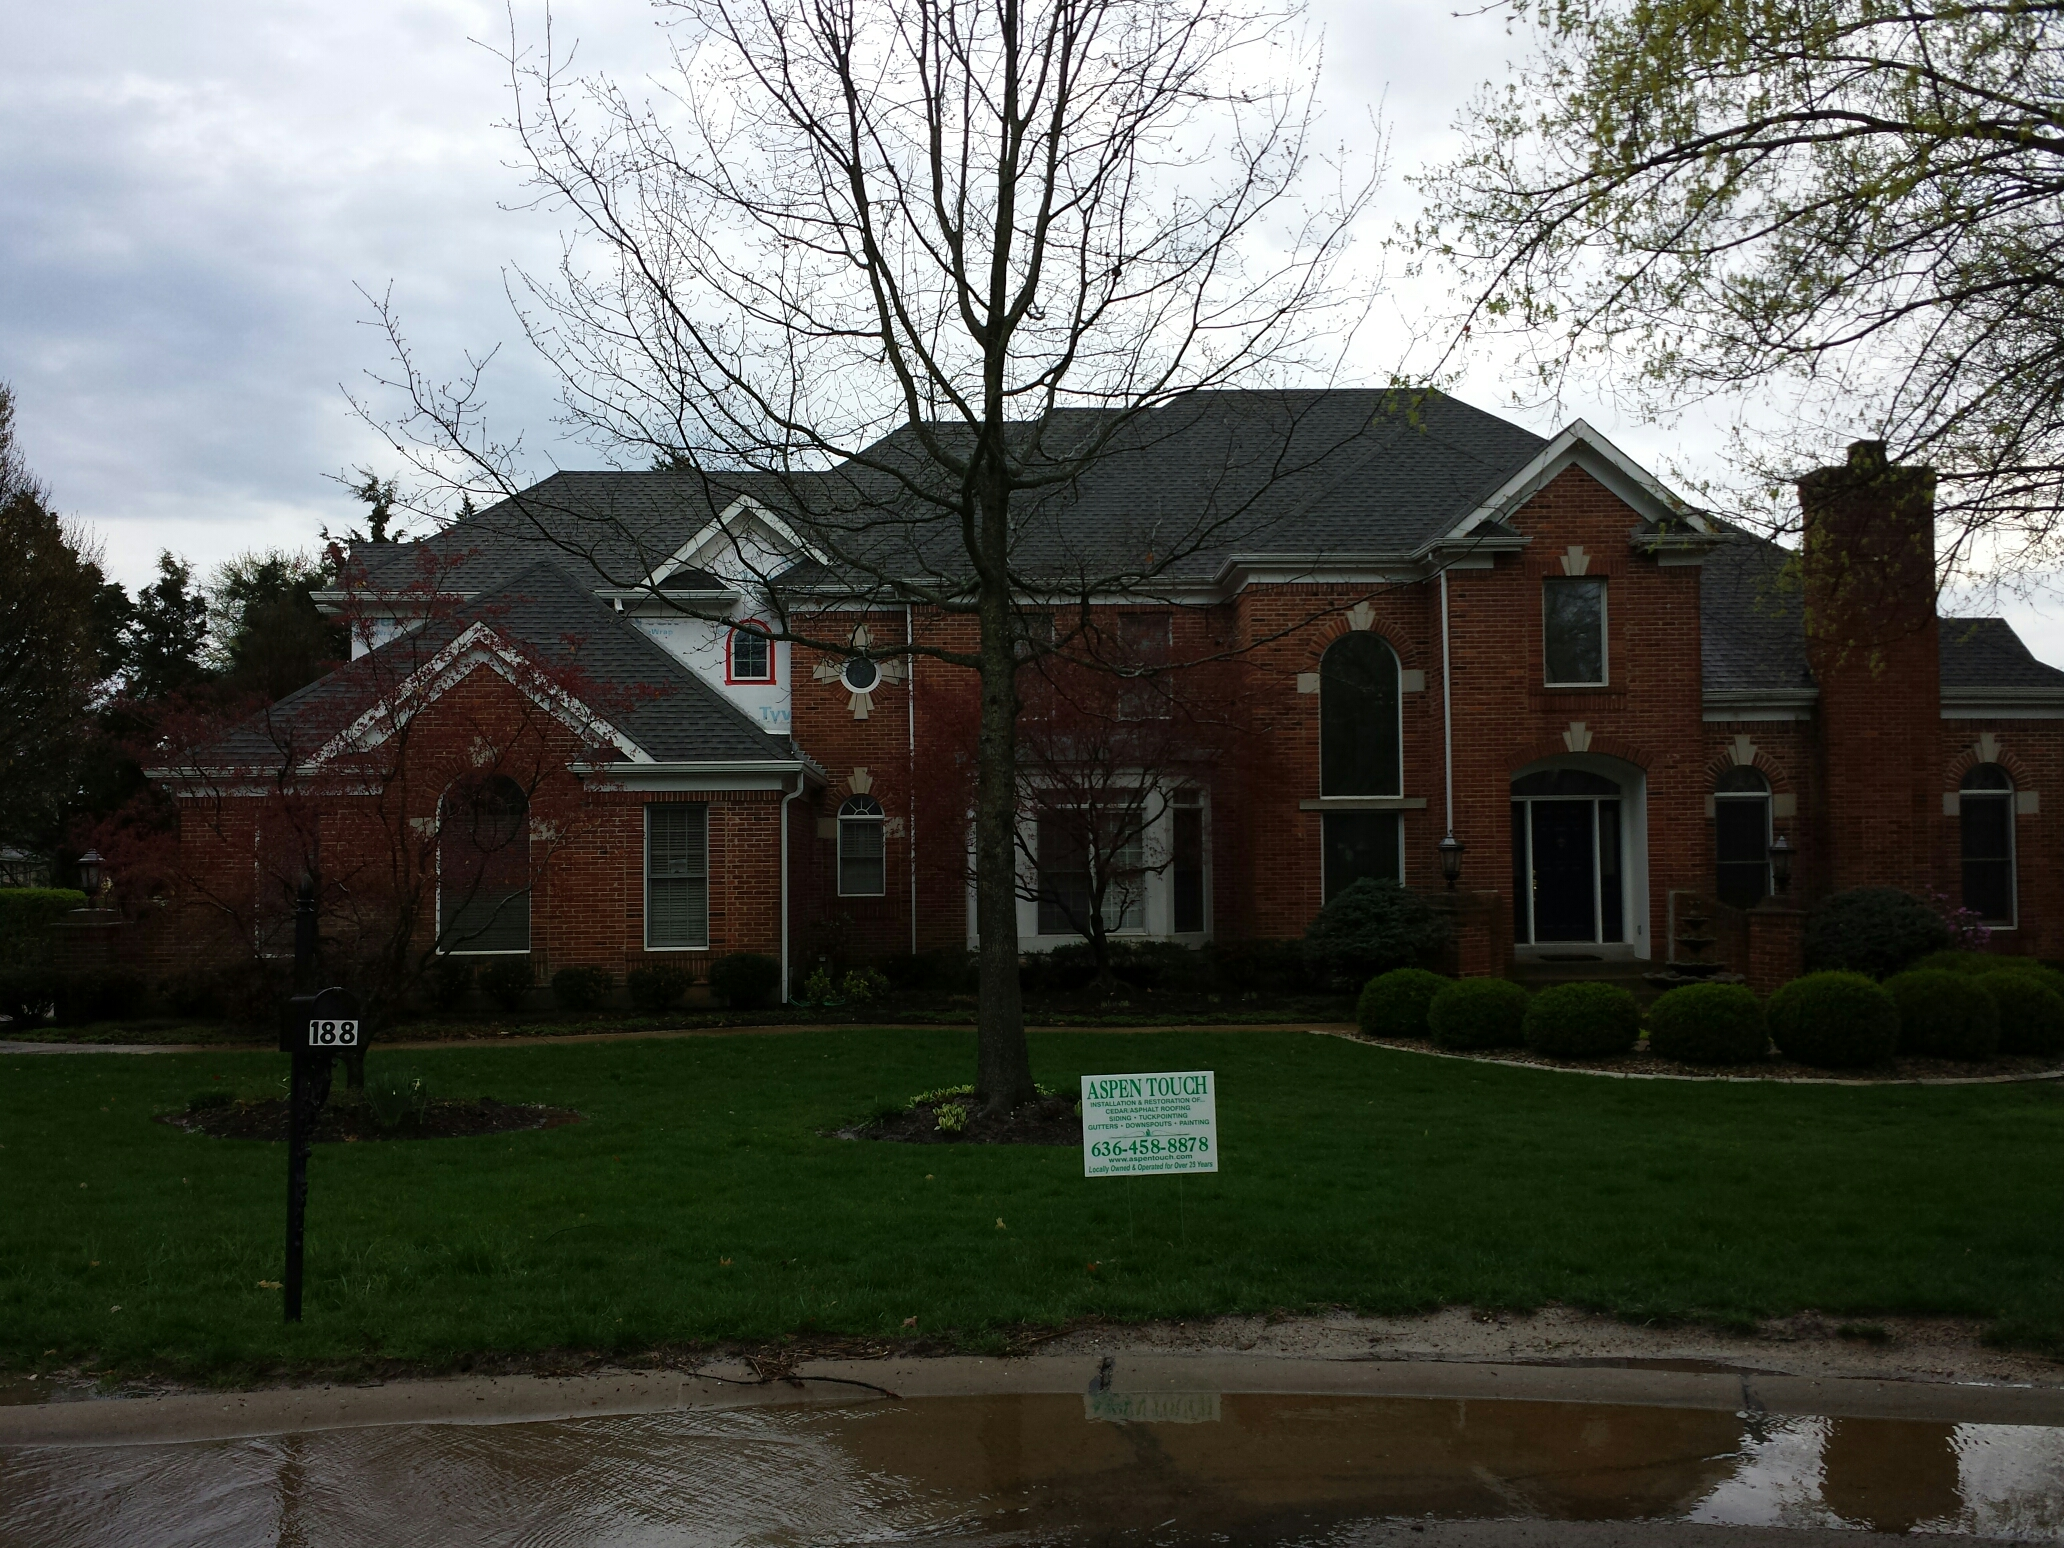 Creve Coeur, MO - New roof, siding and gutters. Insurance claim on roof. Call Joe 314-550-7369